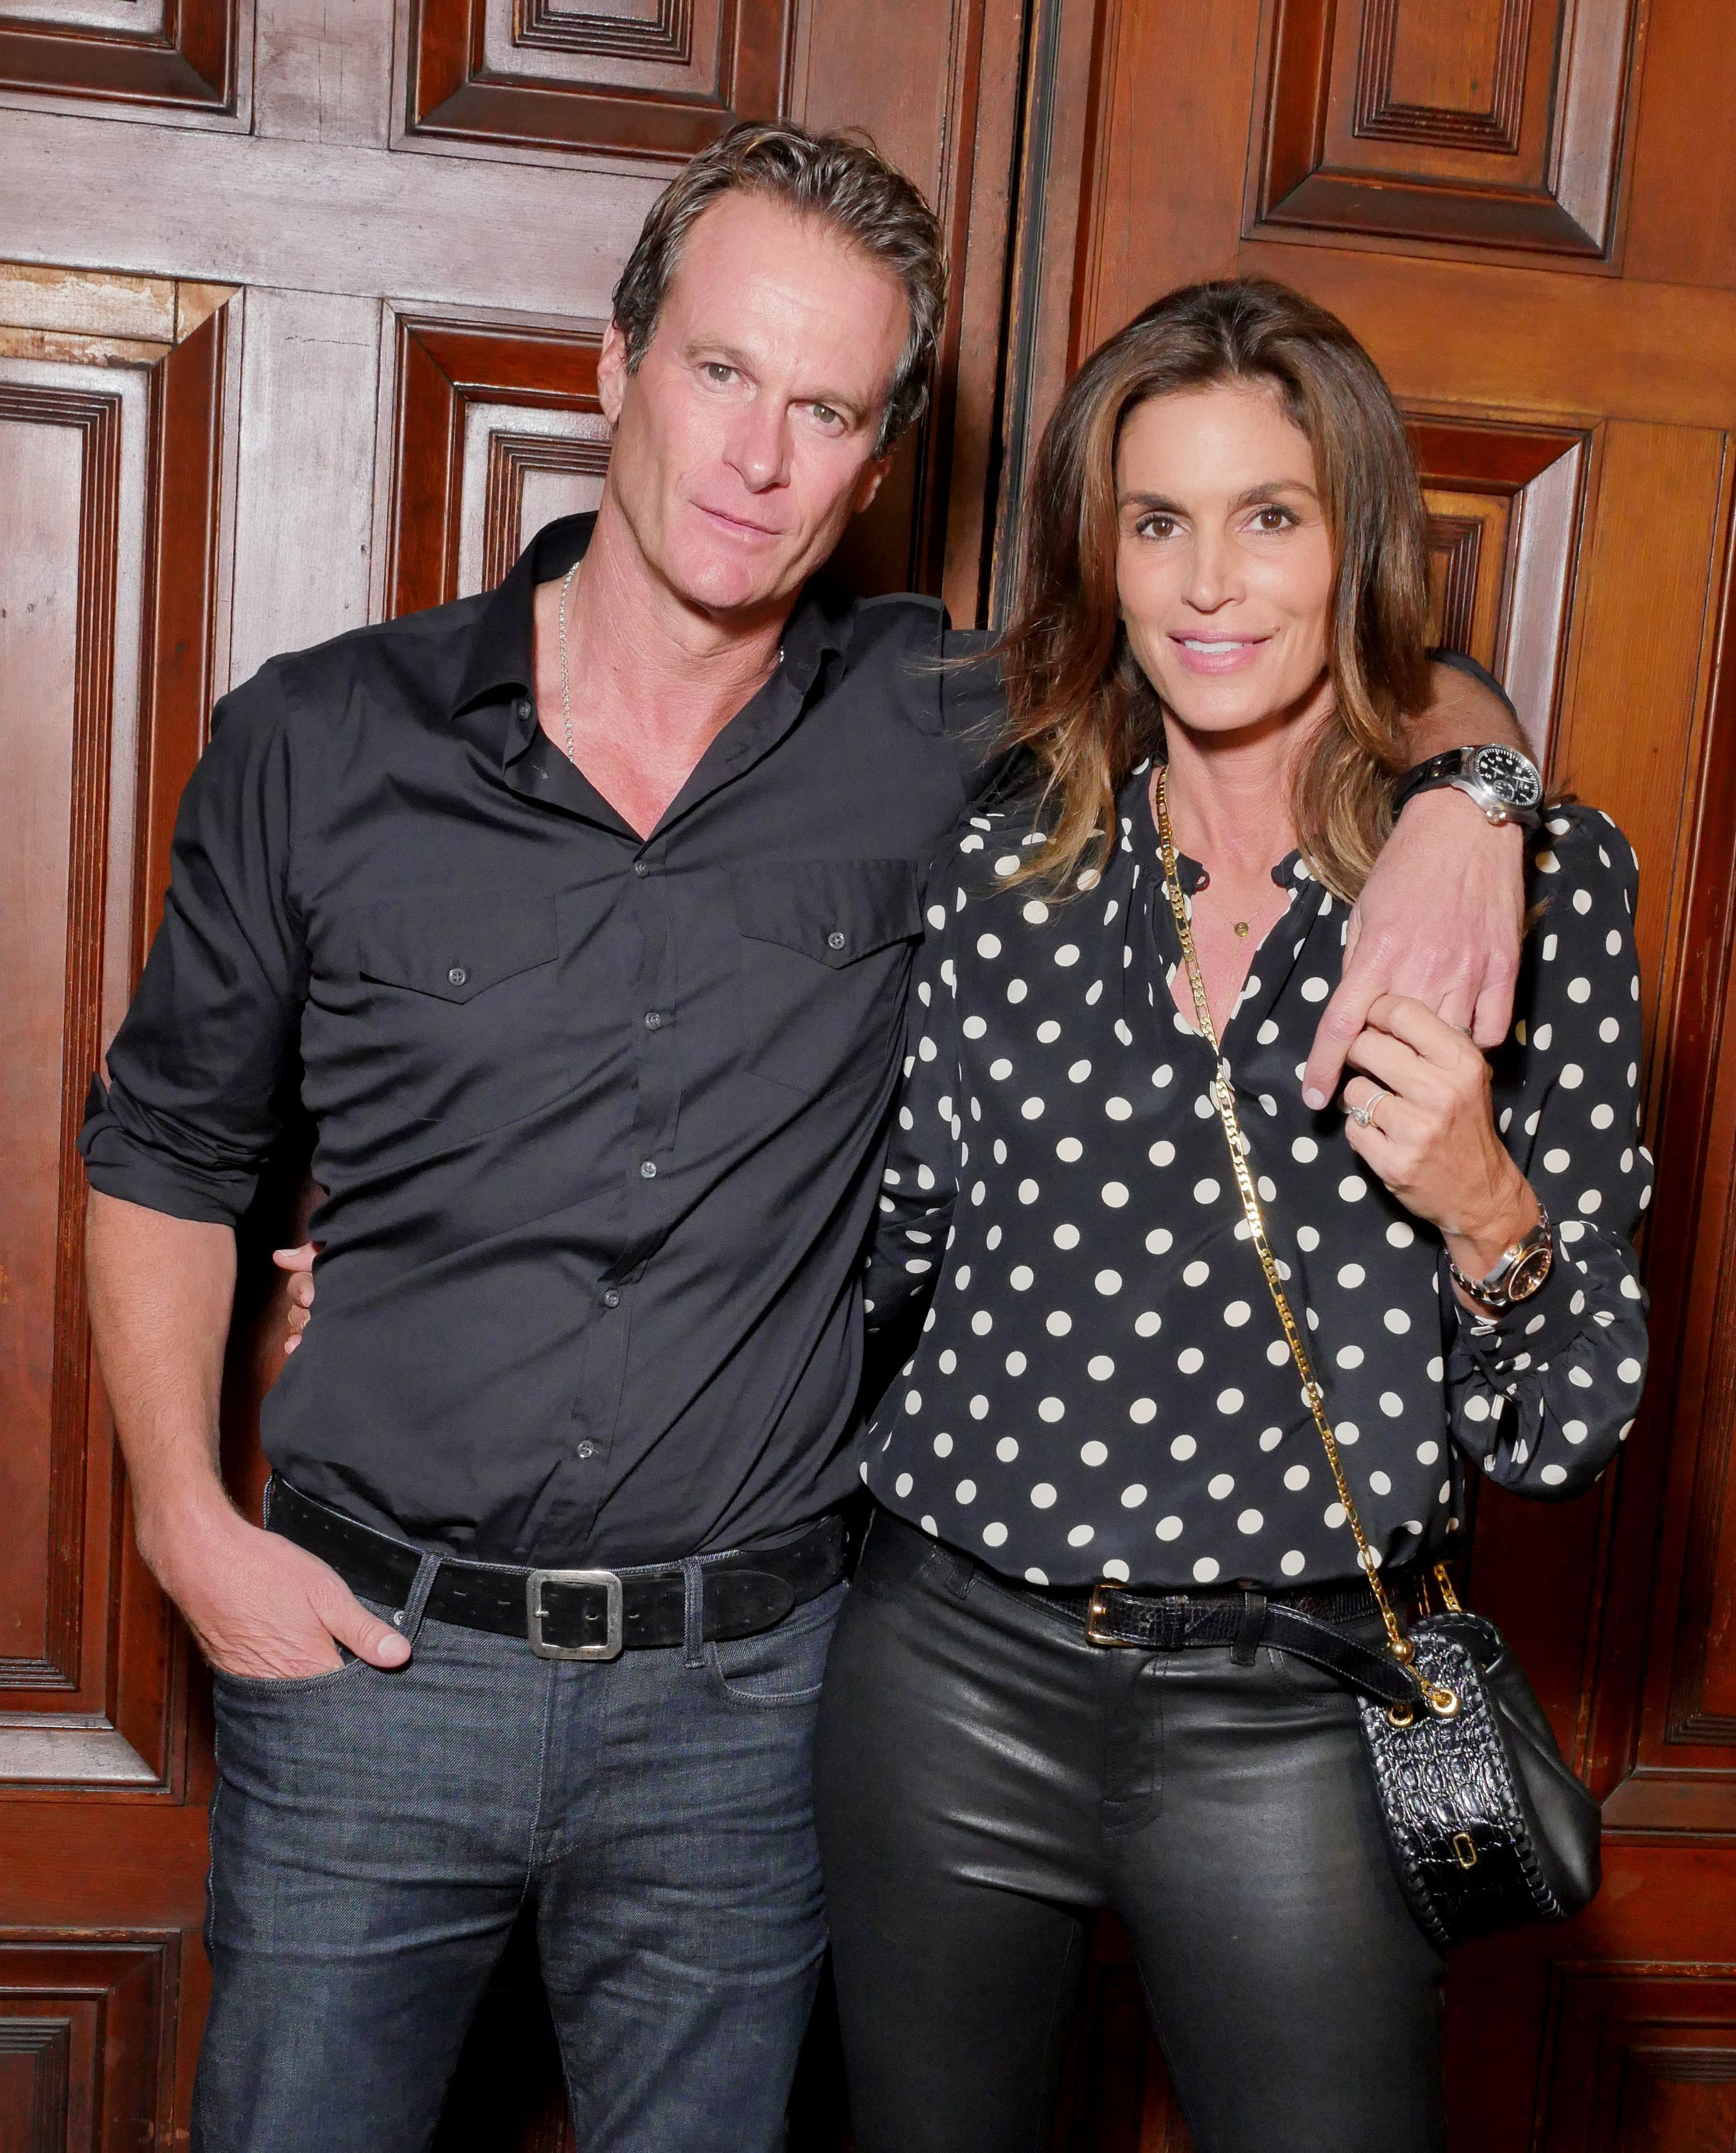 Rande Gerber and Cindy Crawford attend the Marc Jacobs show for Spring/Summer 2018 at New York Fashion Week on Sept. 13, 2017.